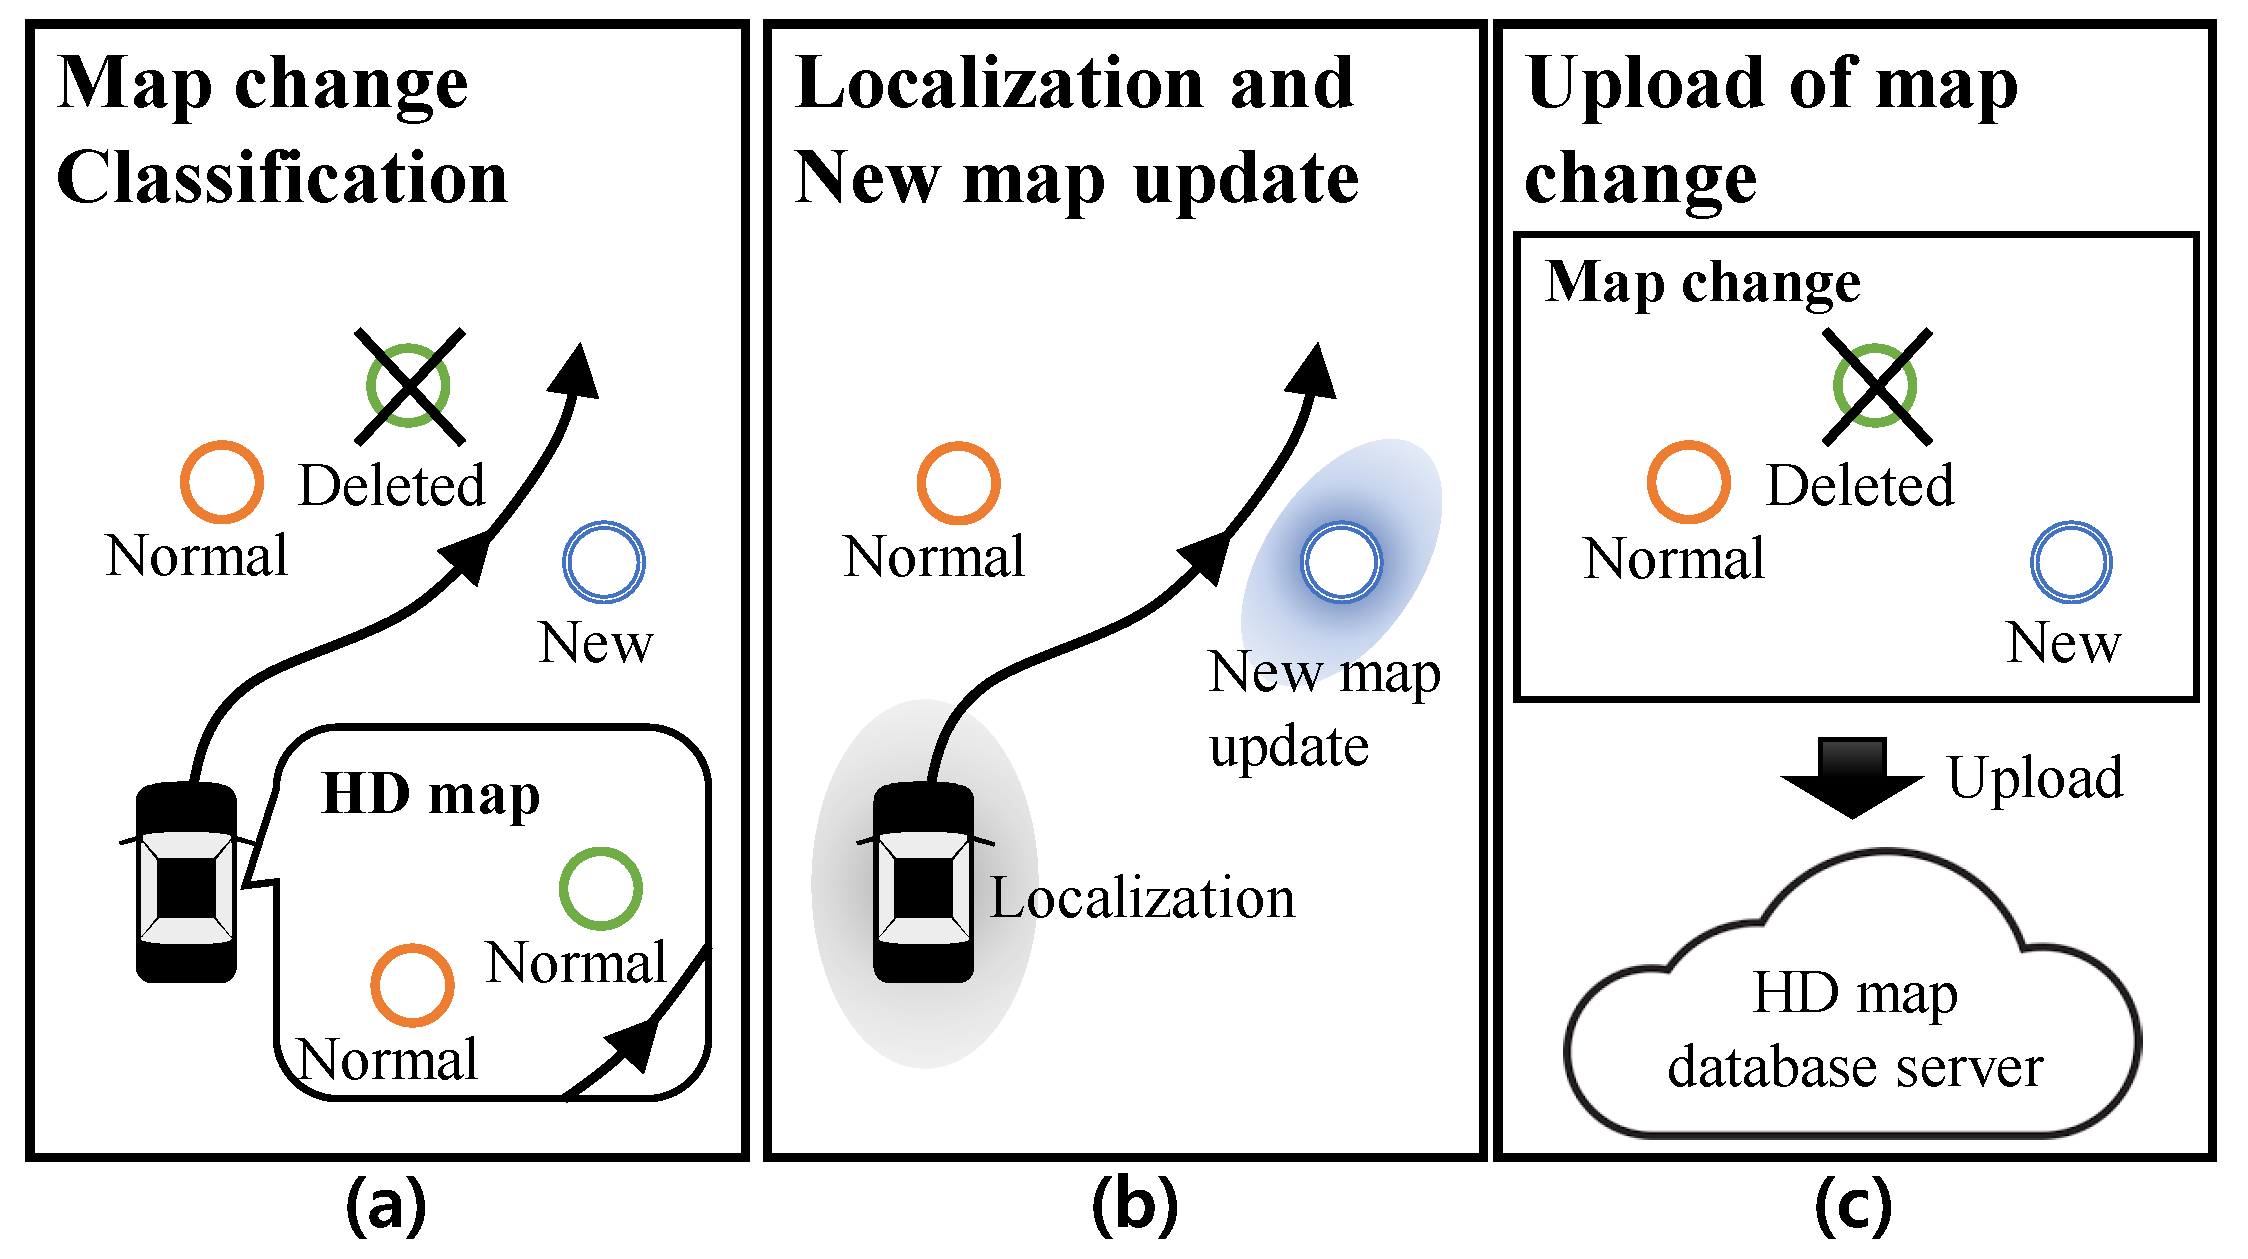 Sensors | Free Full-Text | Simultaneous Localization and Map Change on